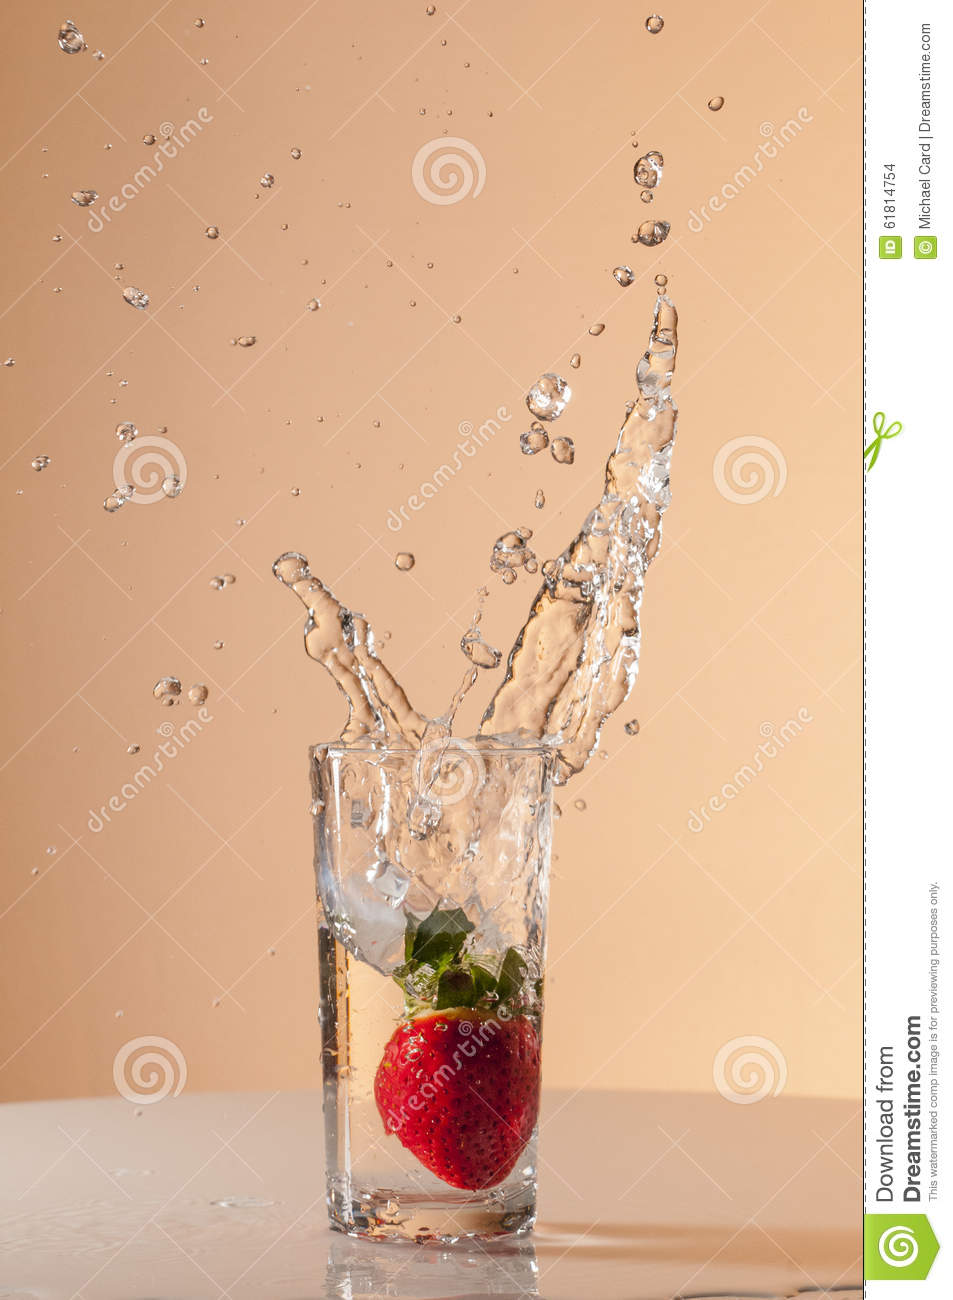 Strawberry dropped into glass of water